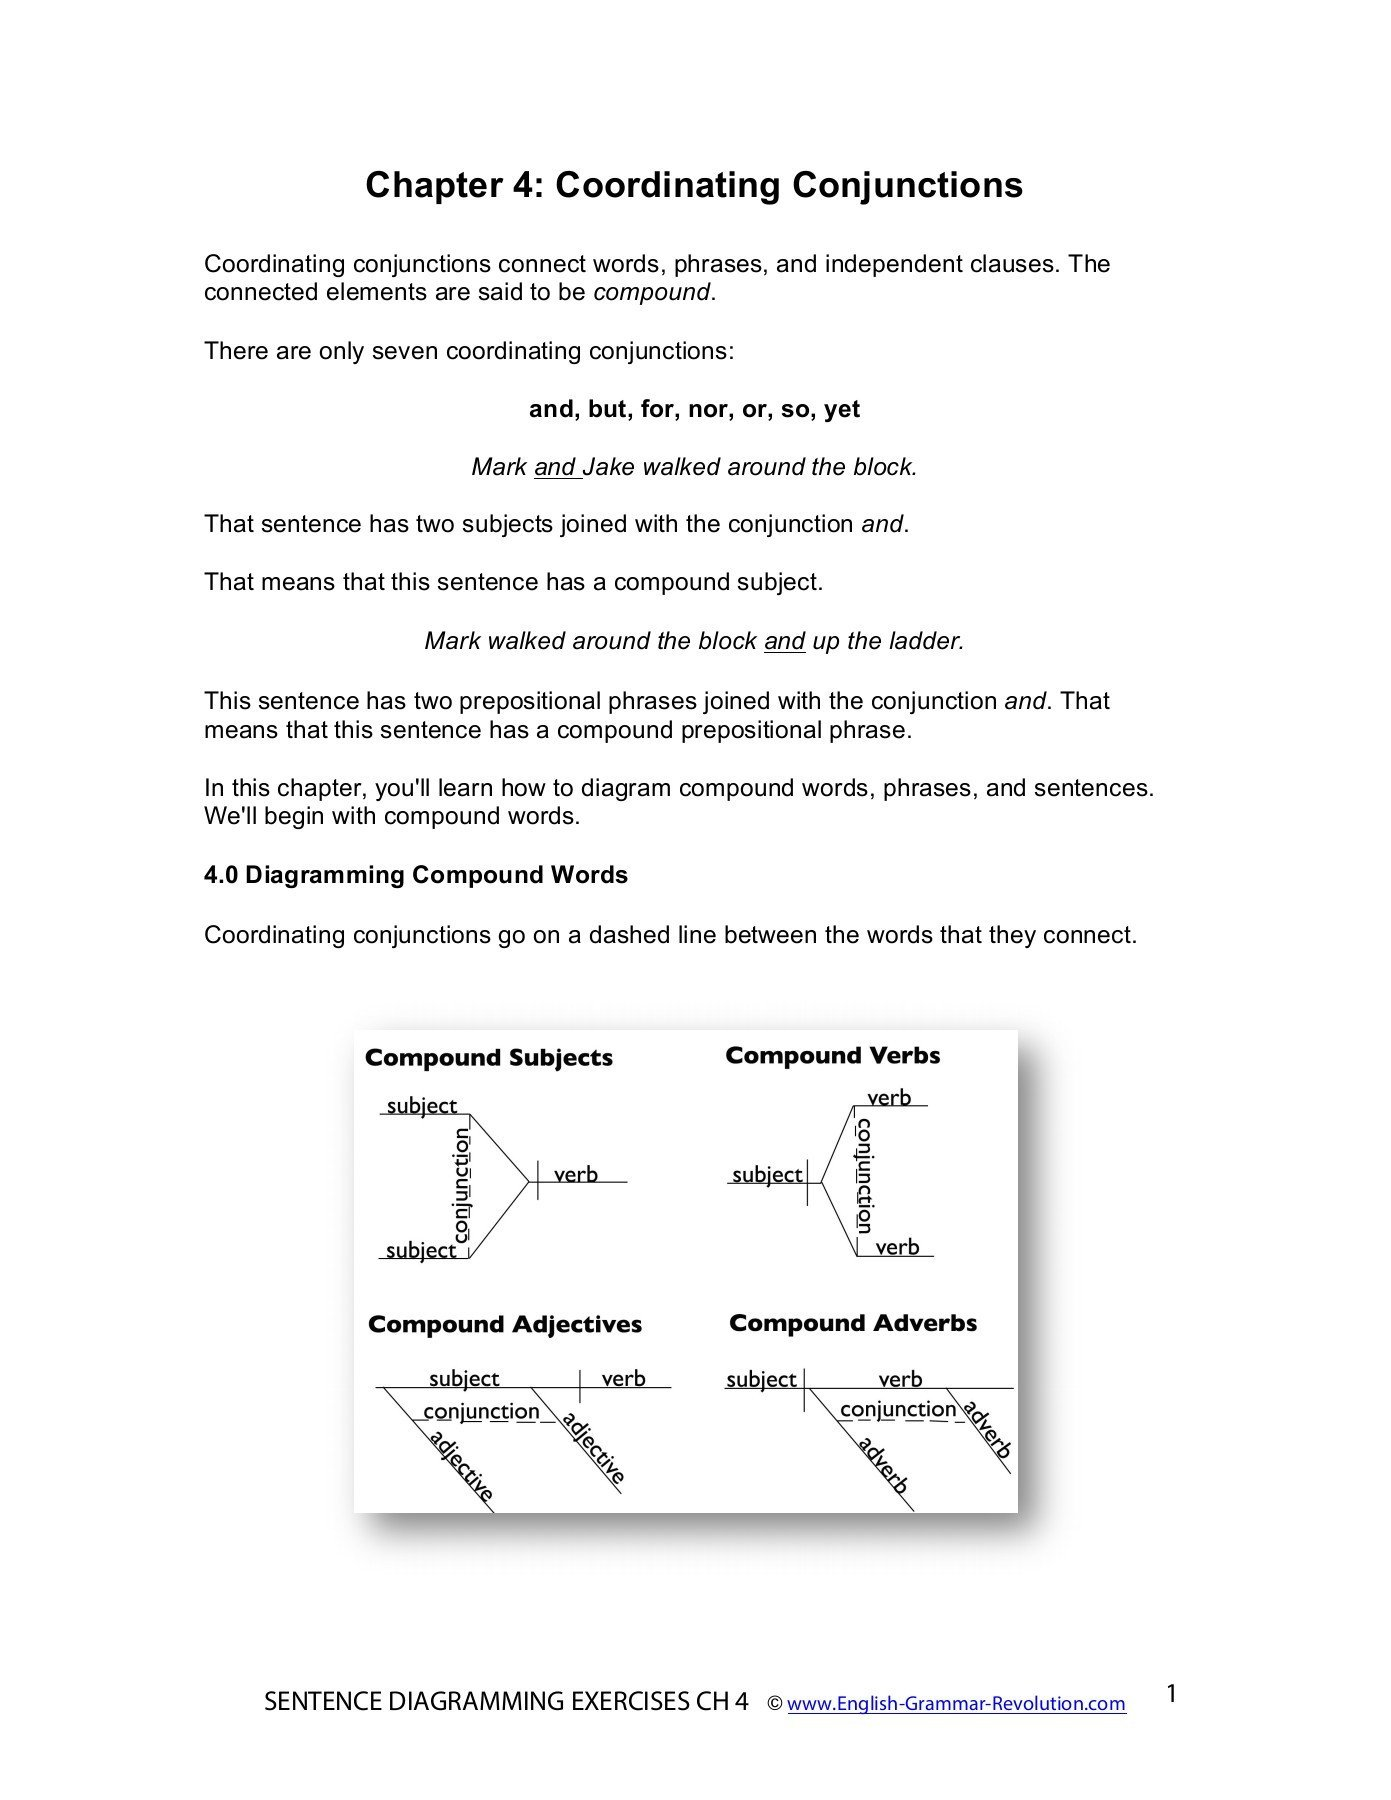 Diagramming Prepositional Phrases Worksheet Chapter 4 Coordinating Conjunctions Pages 1 17 Text